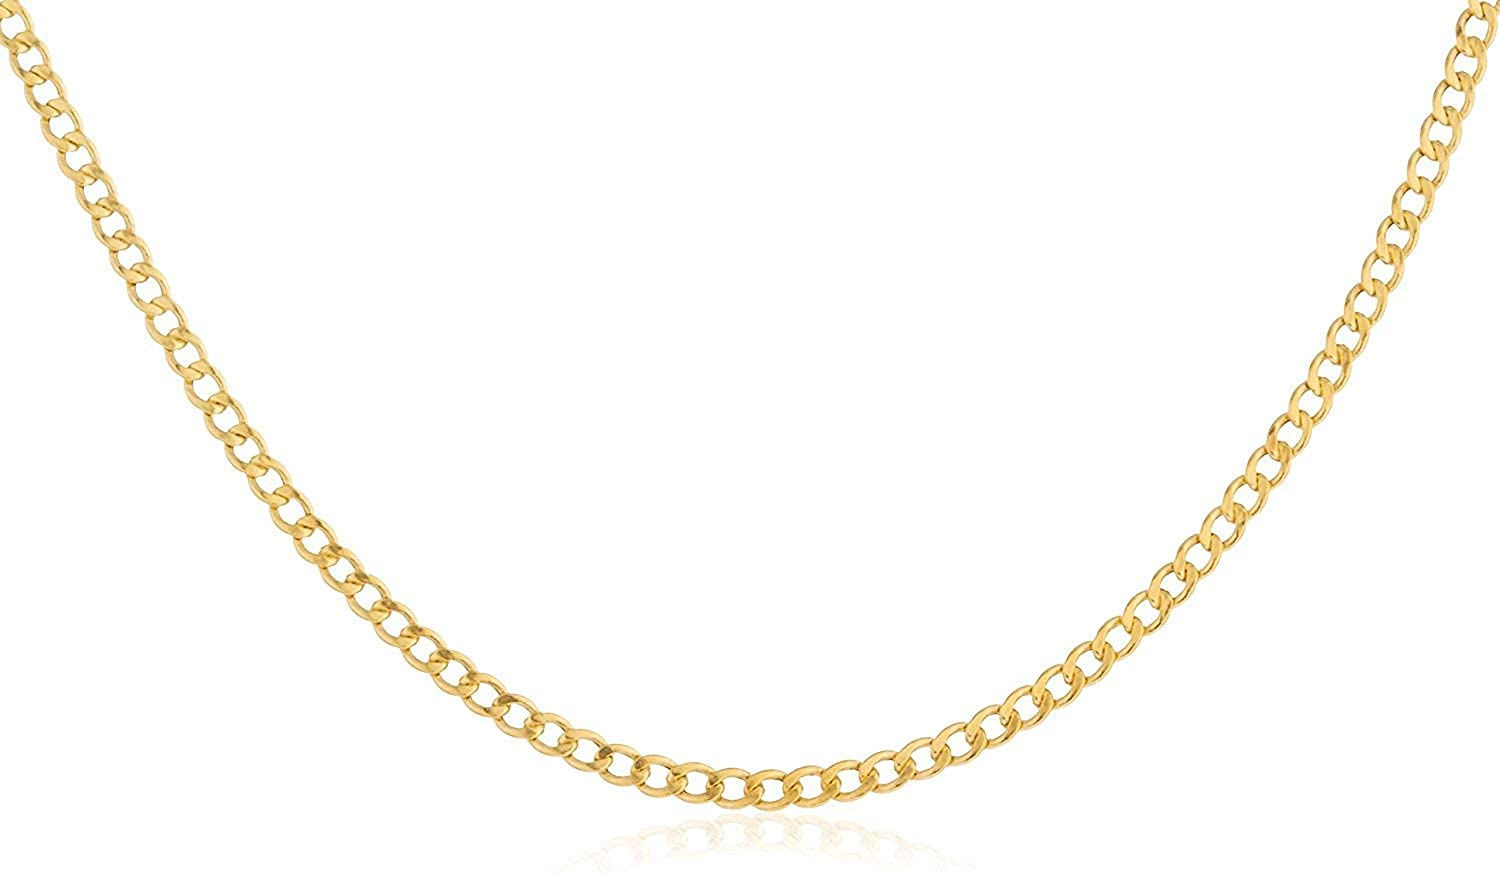 10K Gold 2.0mm Cuban/Curb Link Chain Necklace - Made In Italy- Yellow, White or Rose